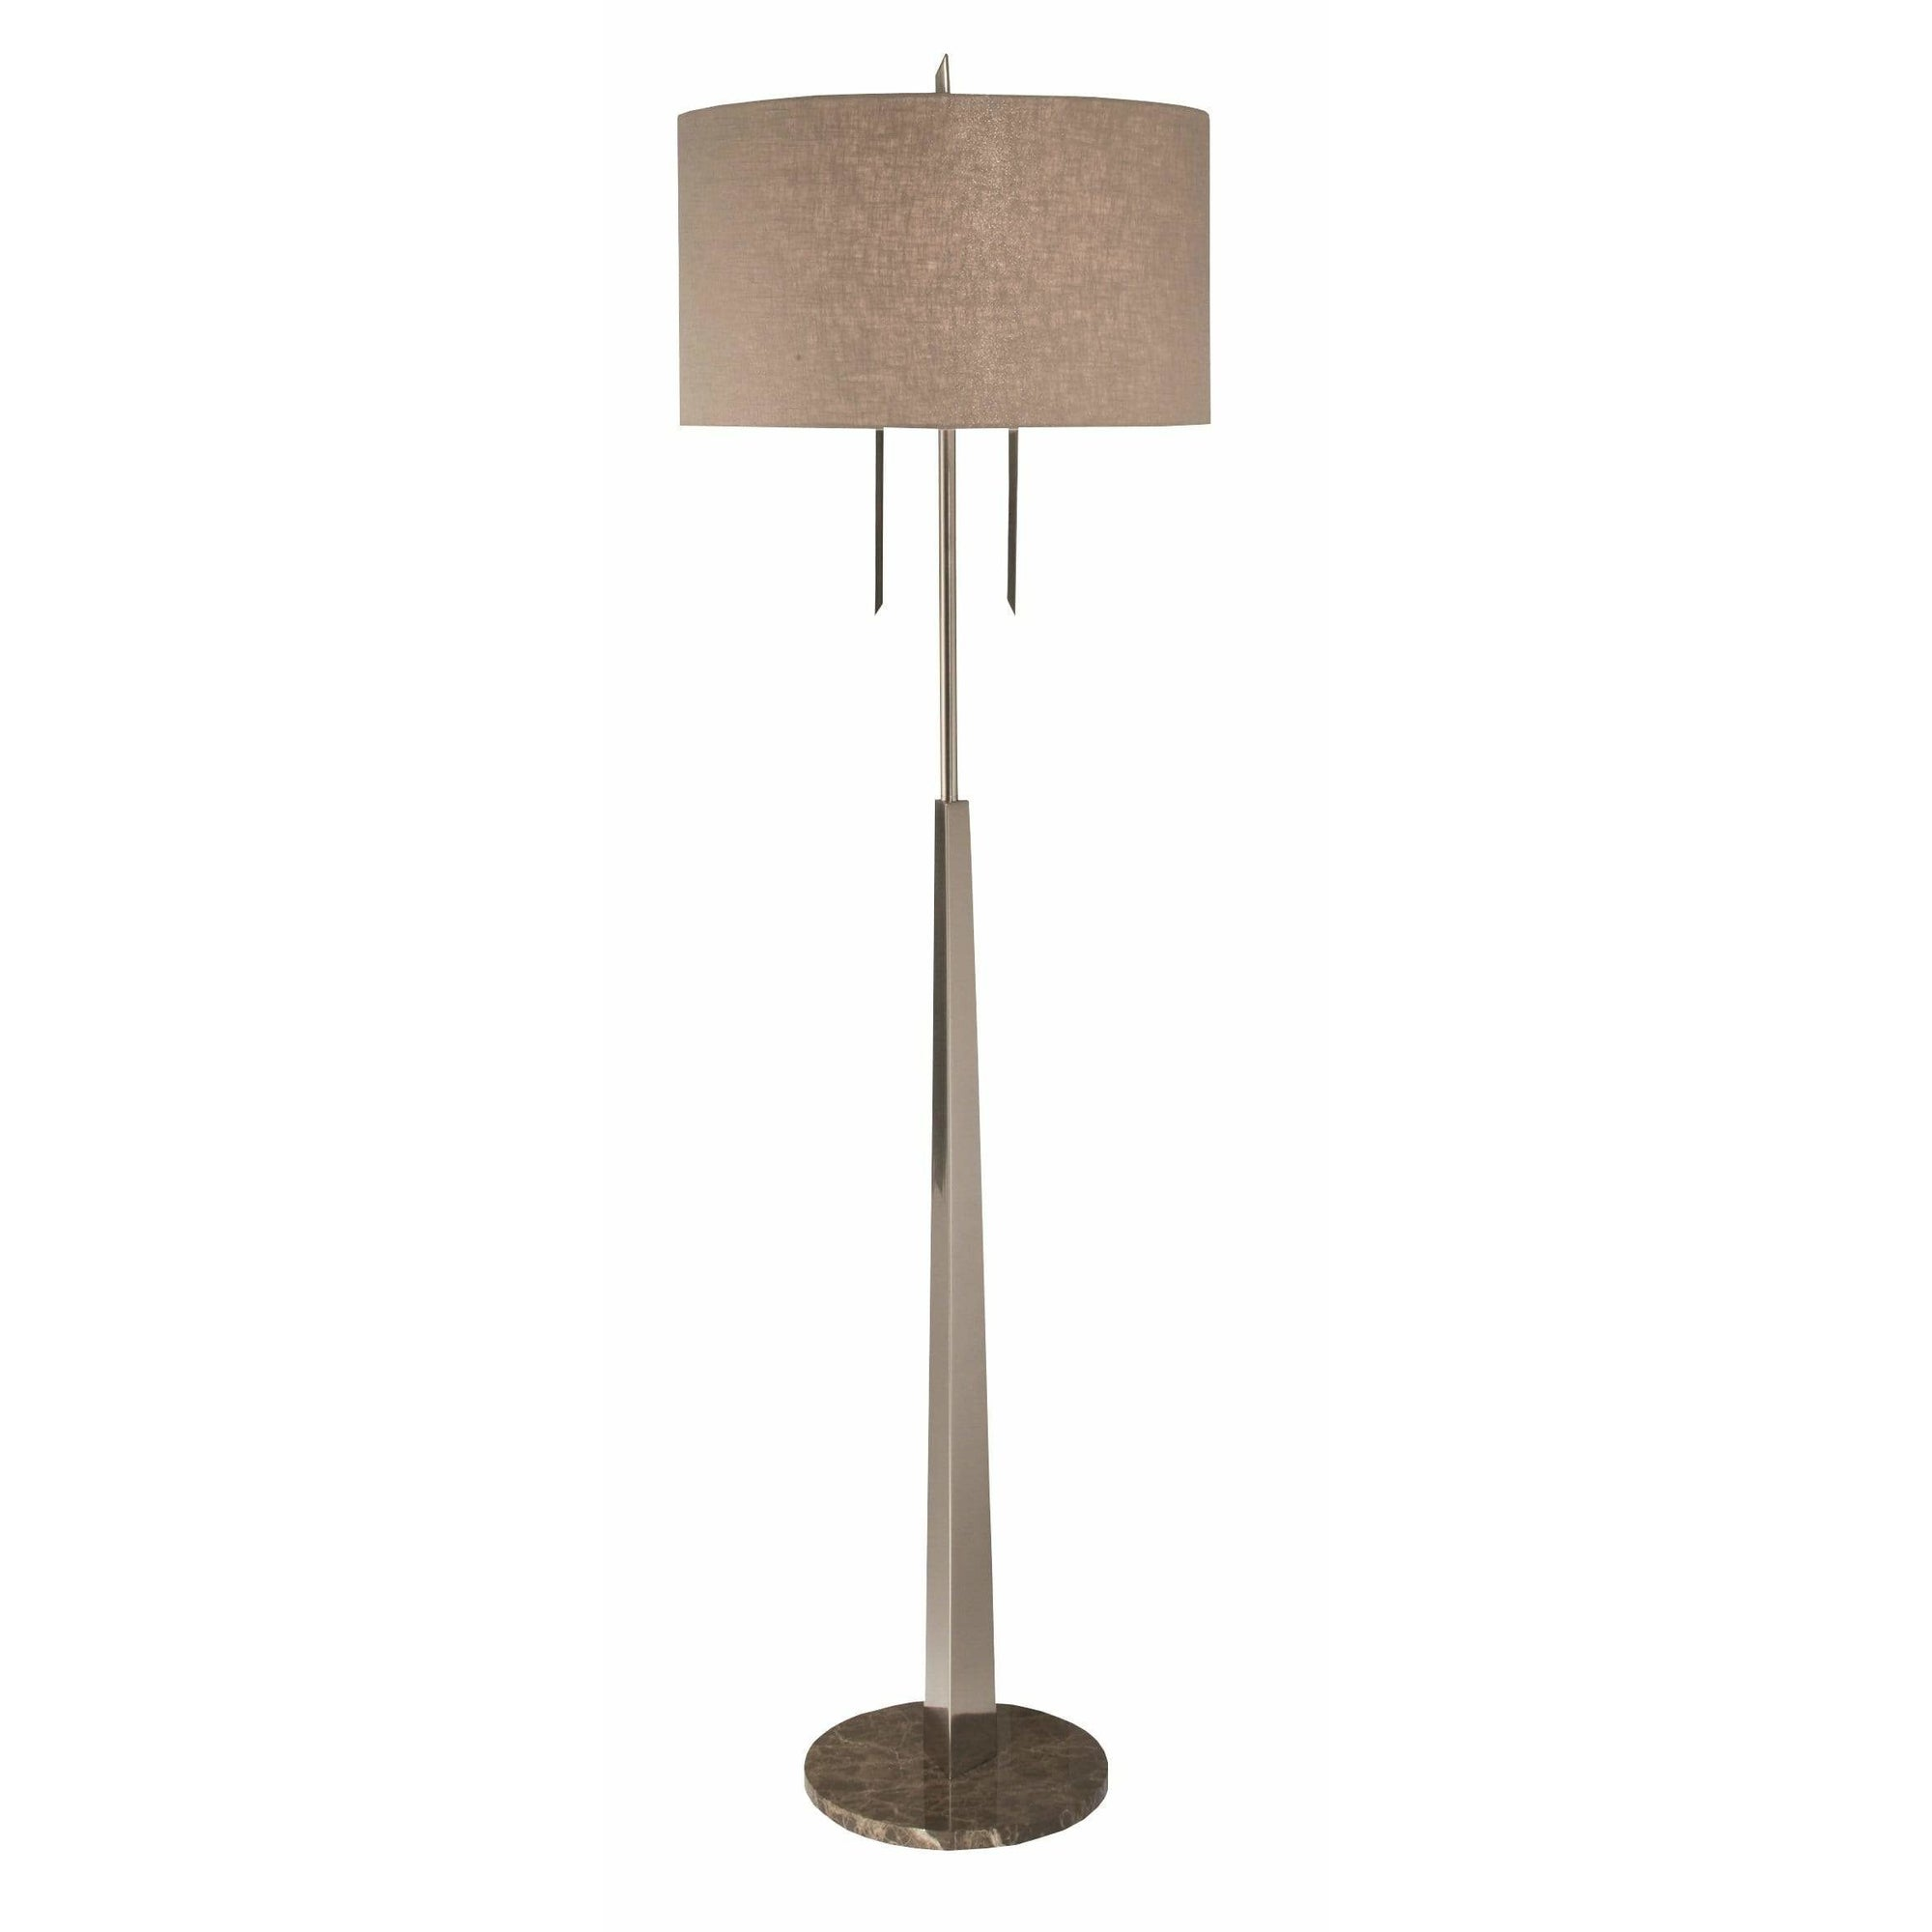 Thumprints Floor Lamps Brushed Nickel / Taupe Linen Hardback Tigers Eye-Floor Lamp Floor Lamp By Thumprints 1096-ASL-2060